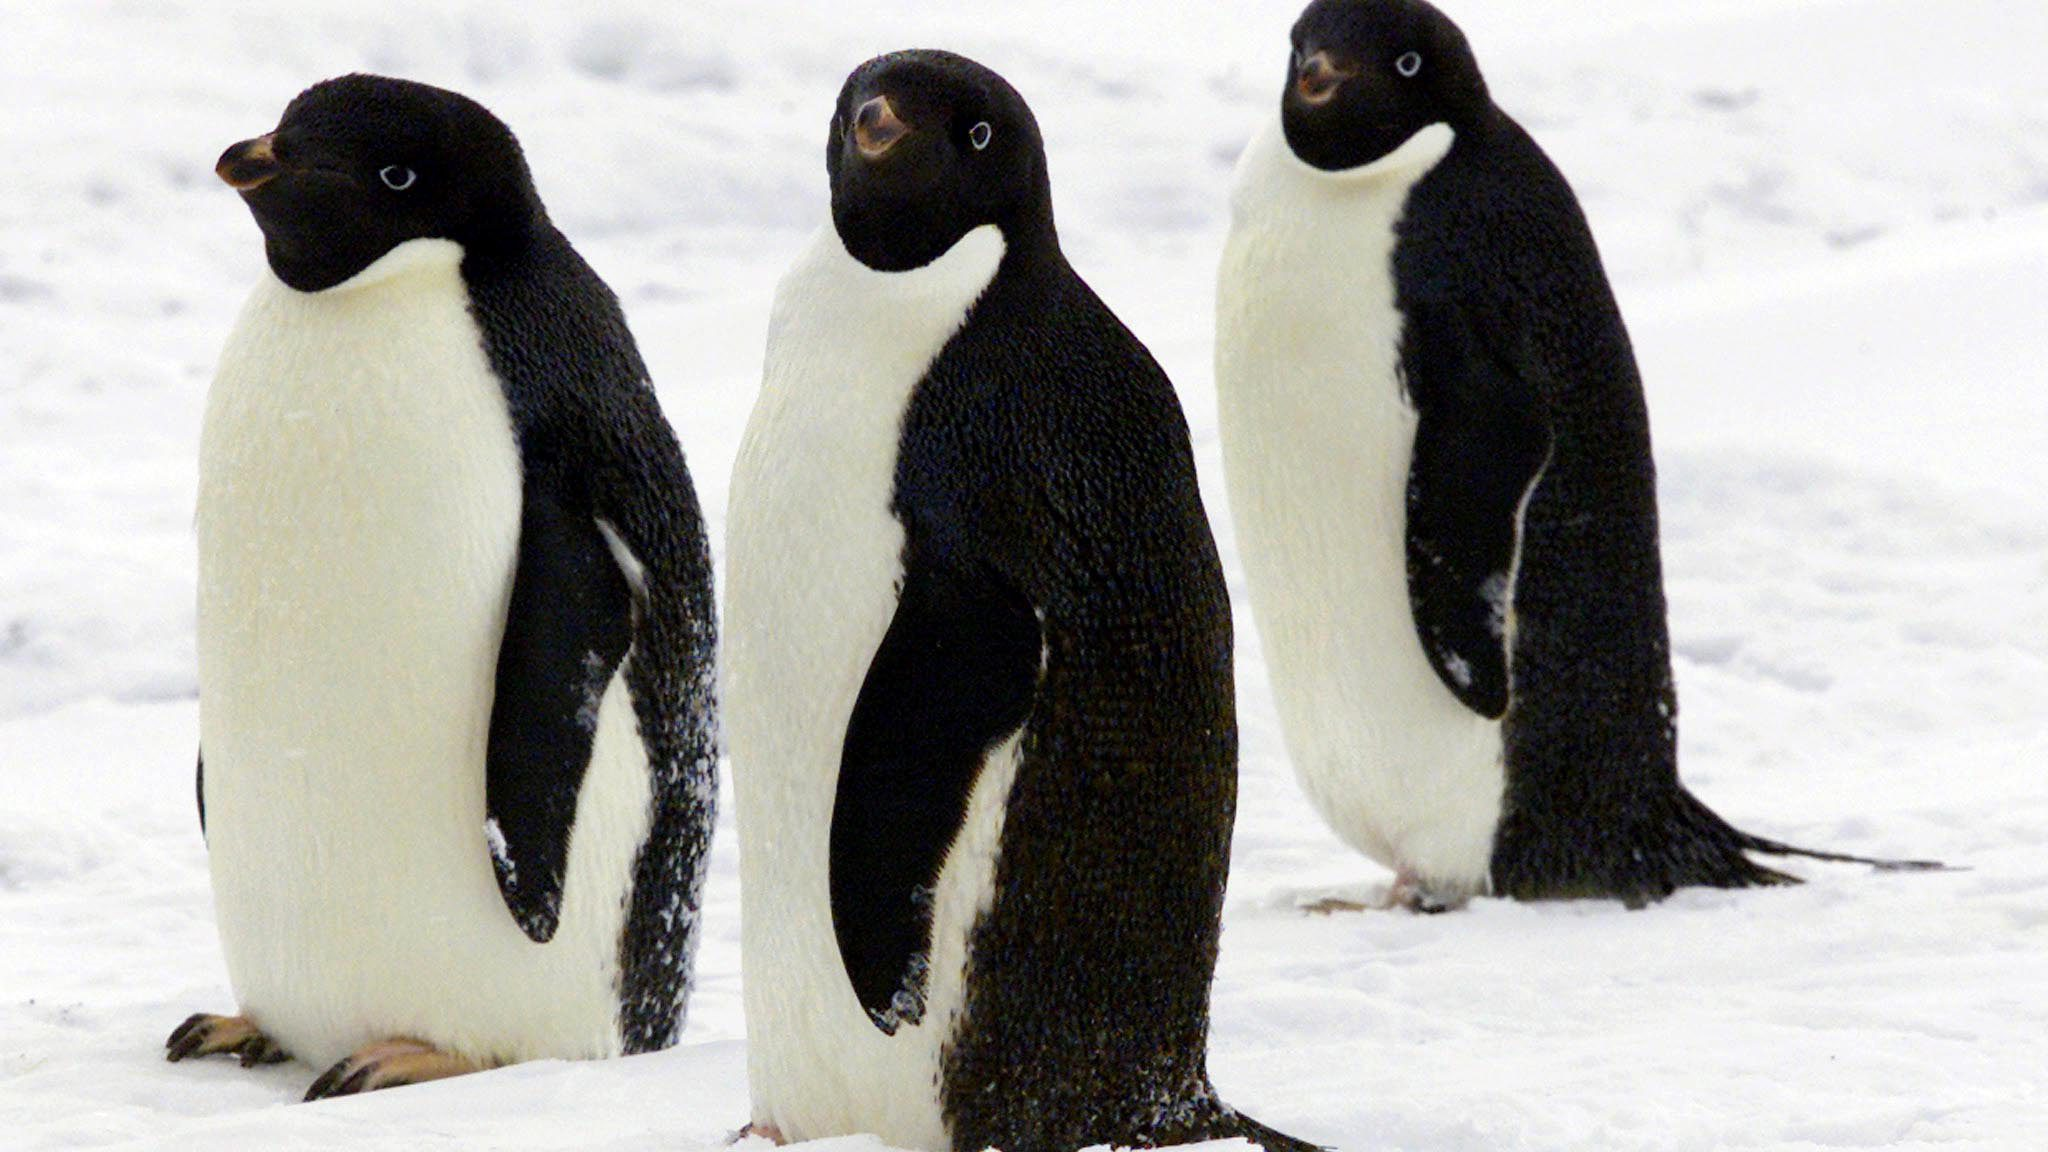 three adelie penguins walk together